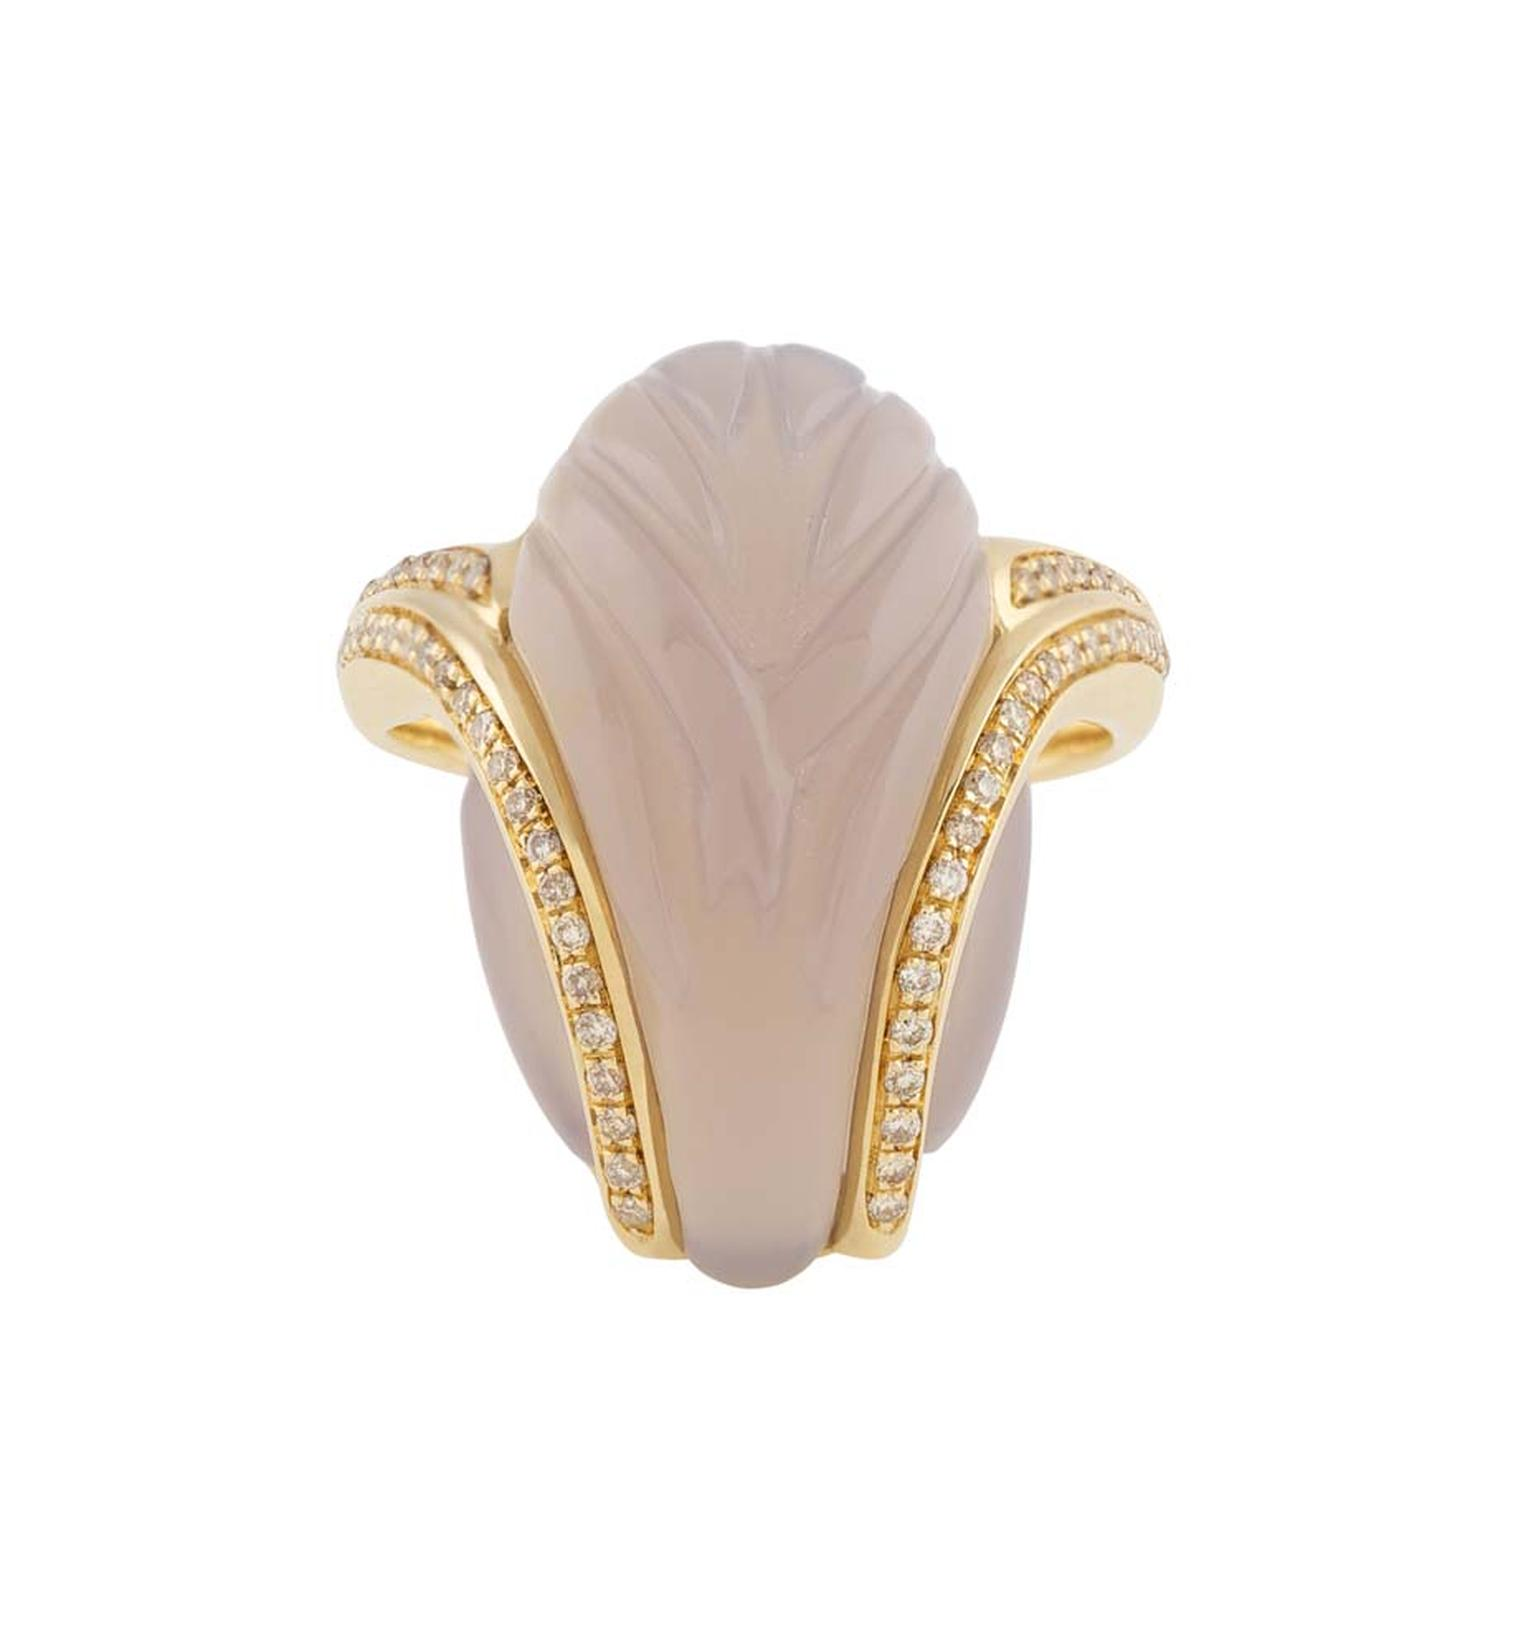 Noor Fares Fly Me to the Moon yellow gold ring with an almond-shaped mother-of-pearl stone with carved wing details and insets of diamonds with a yellow gold setting.